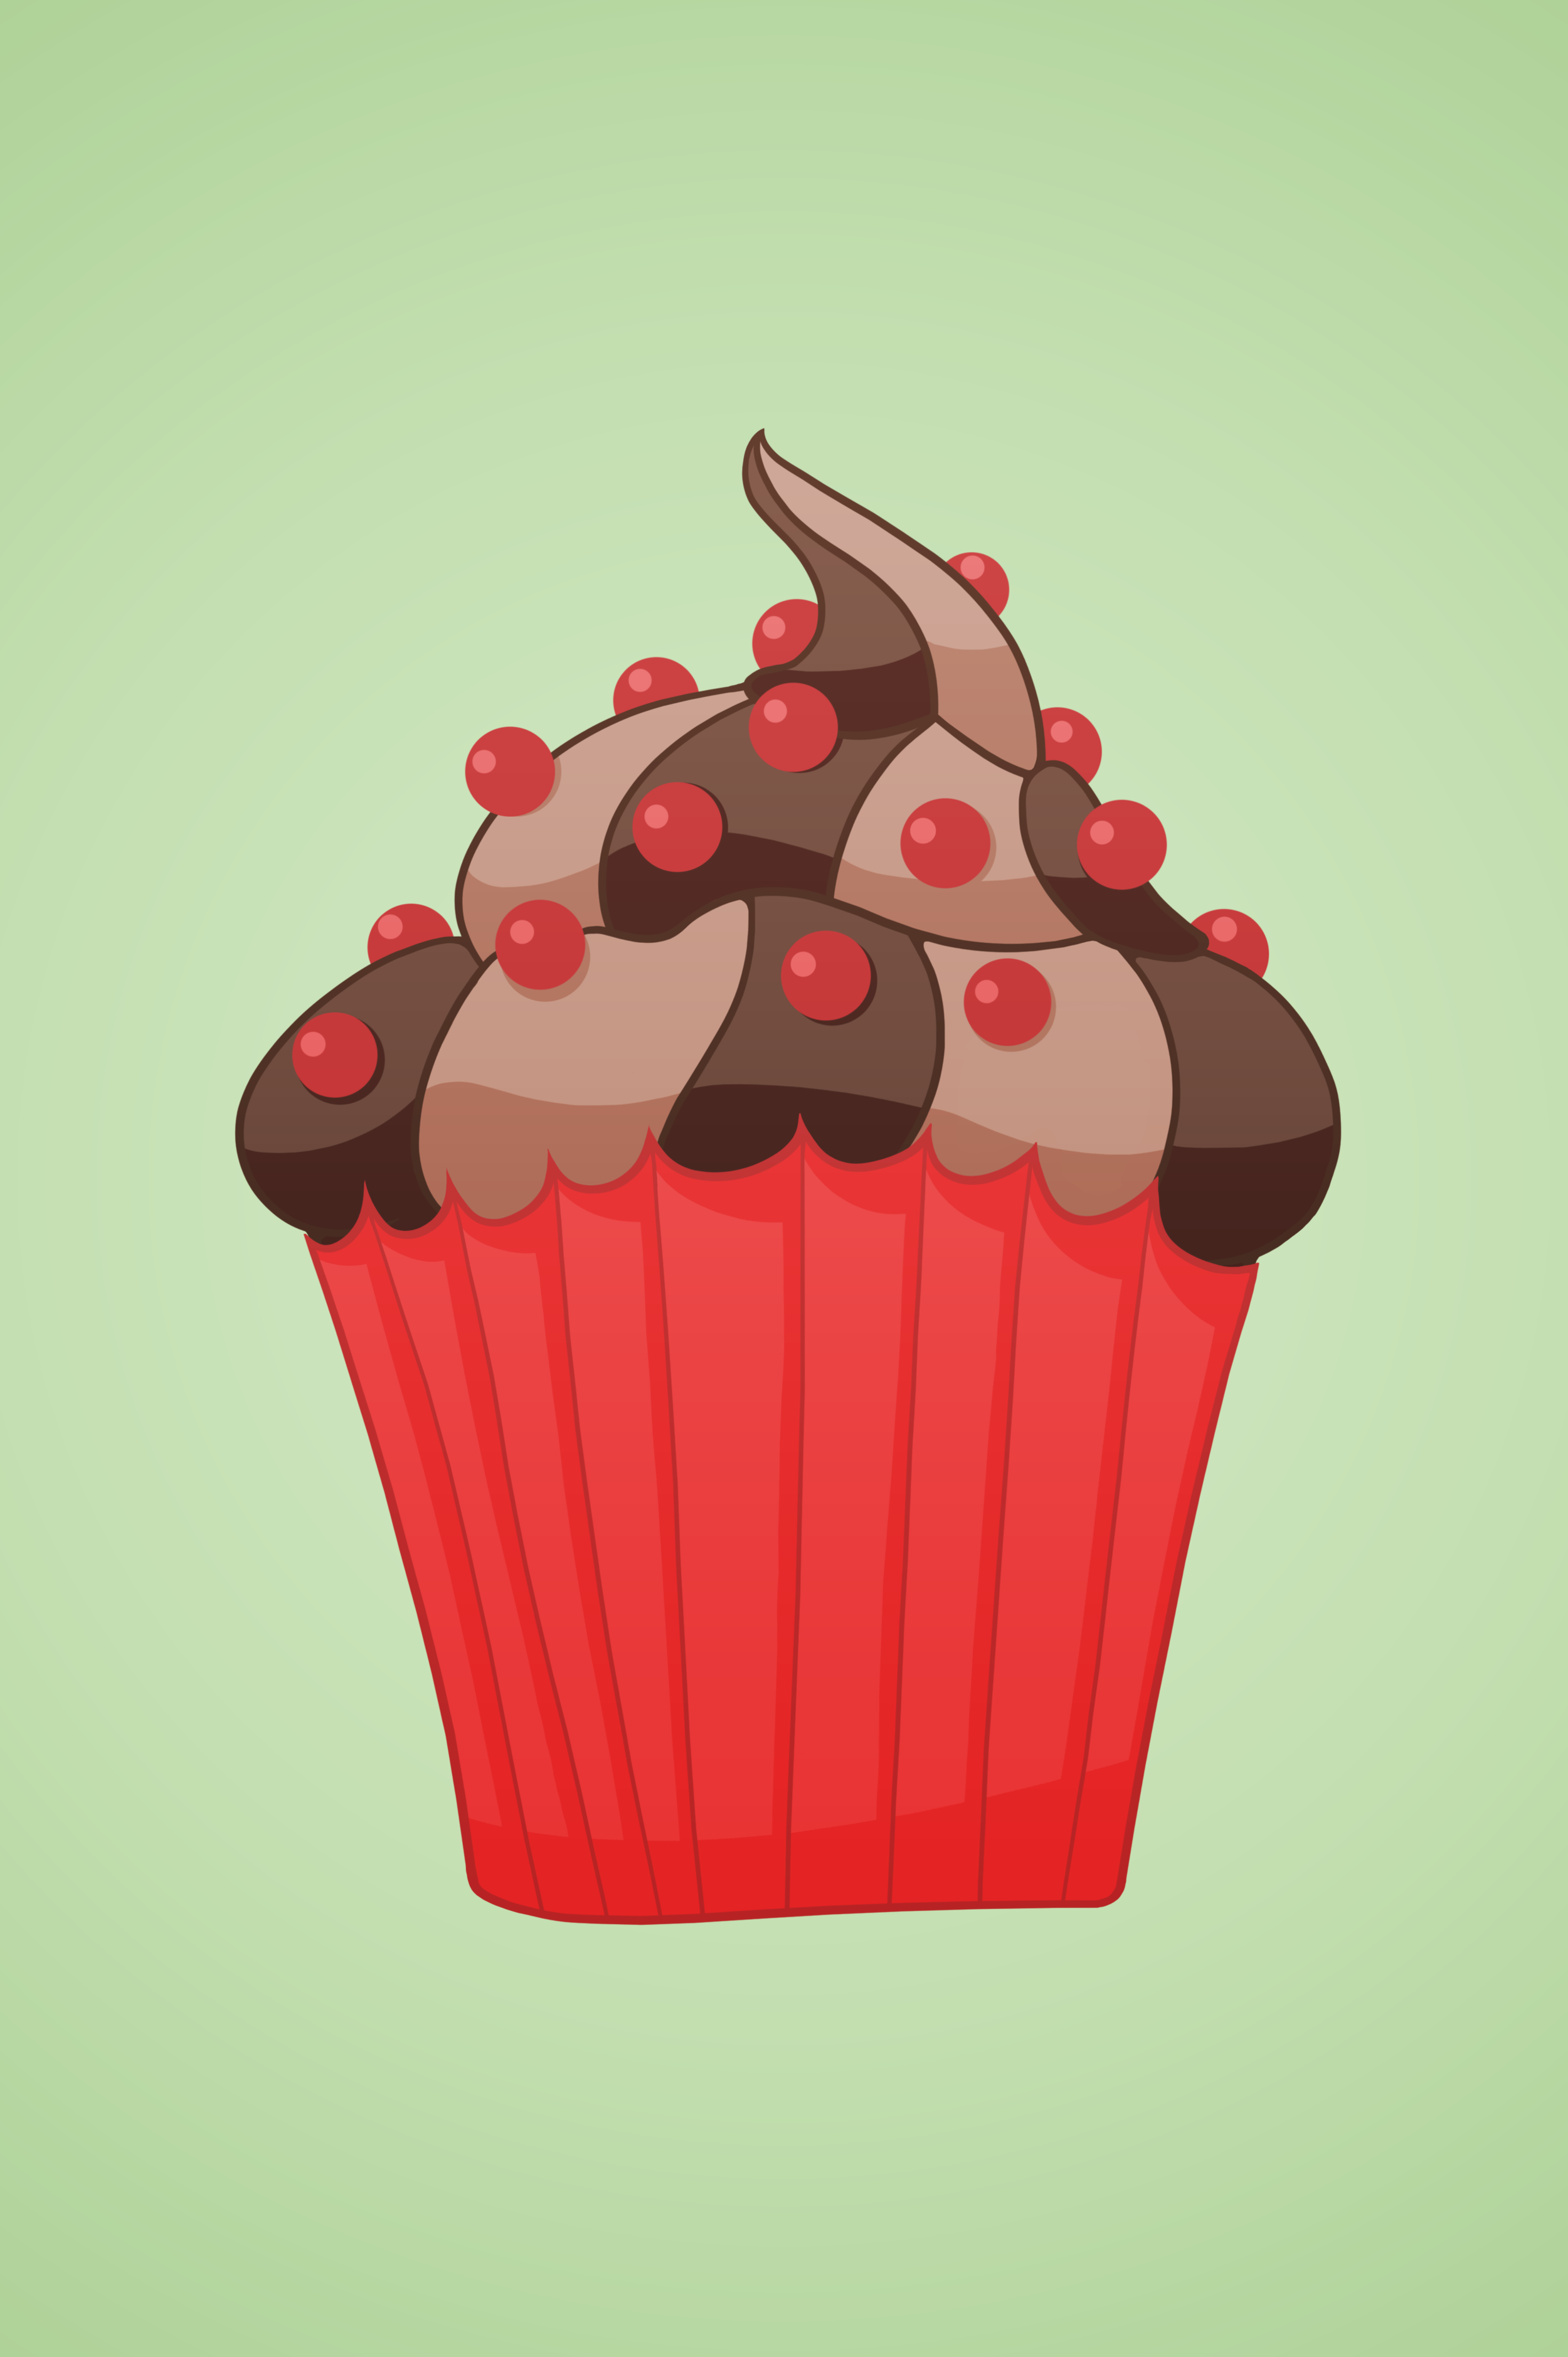 cupcake02Colour.png